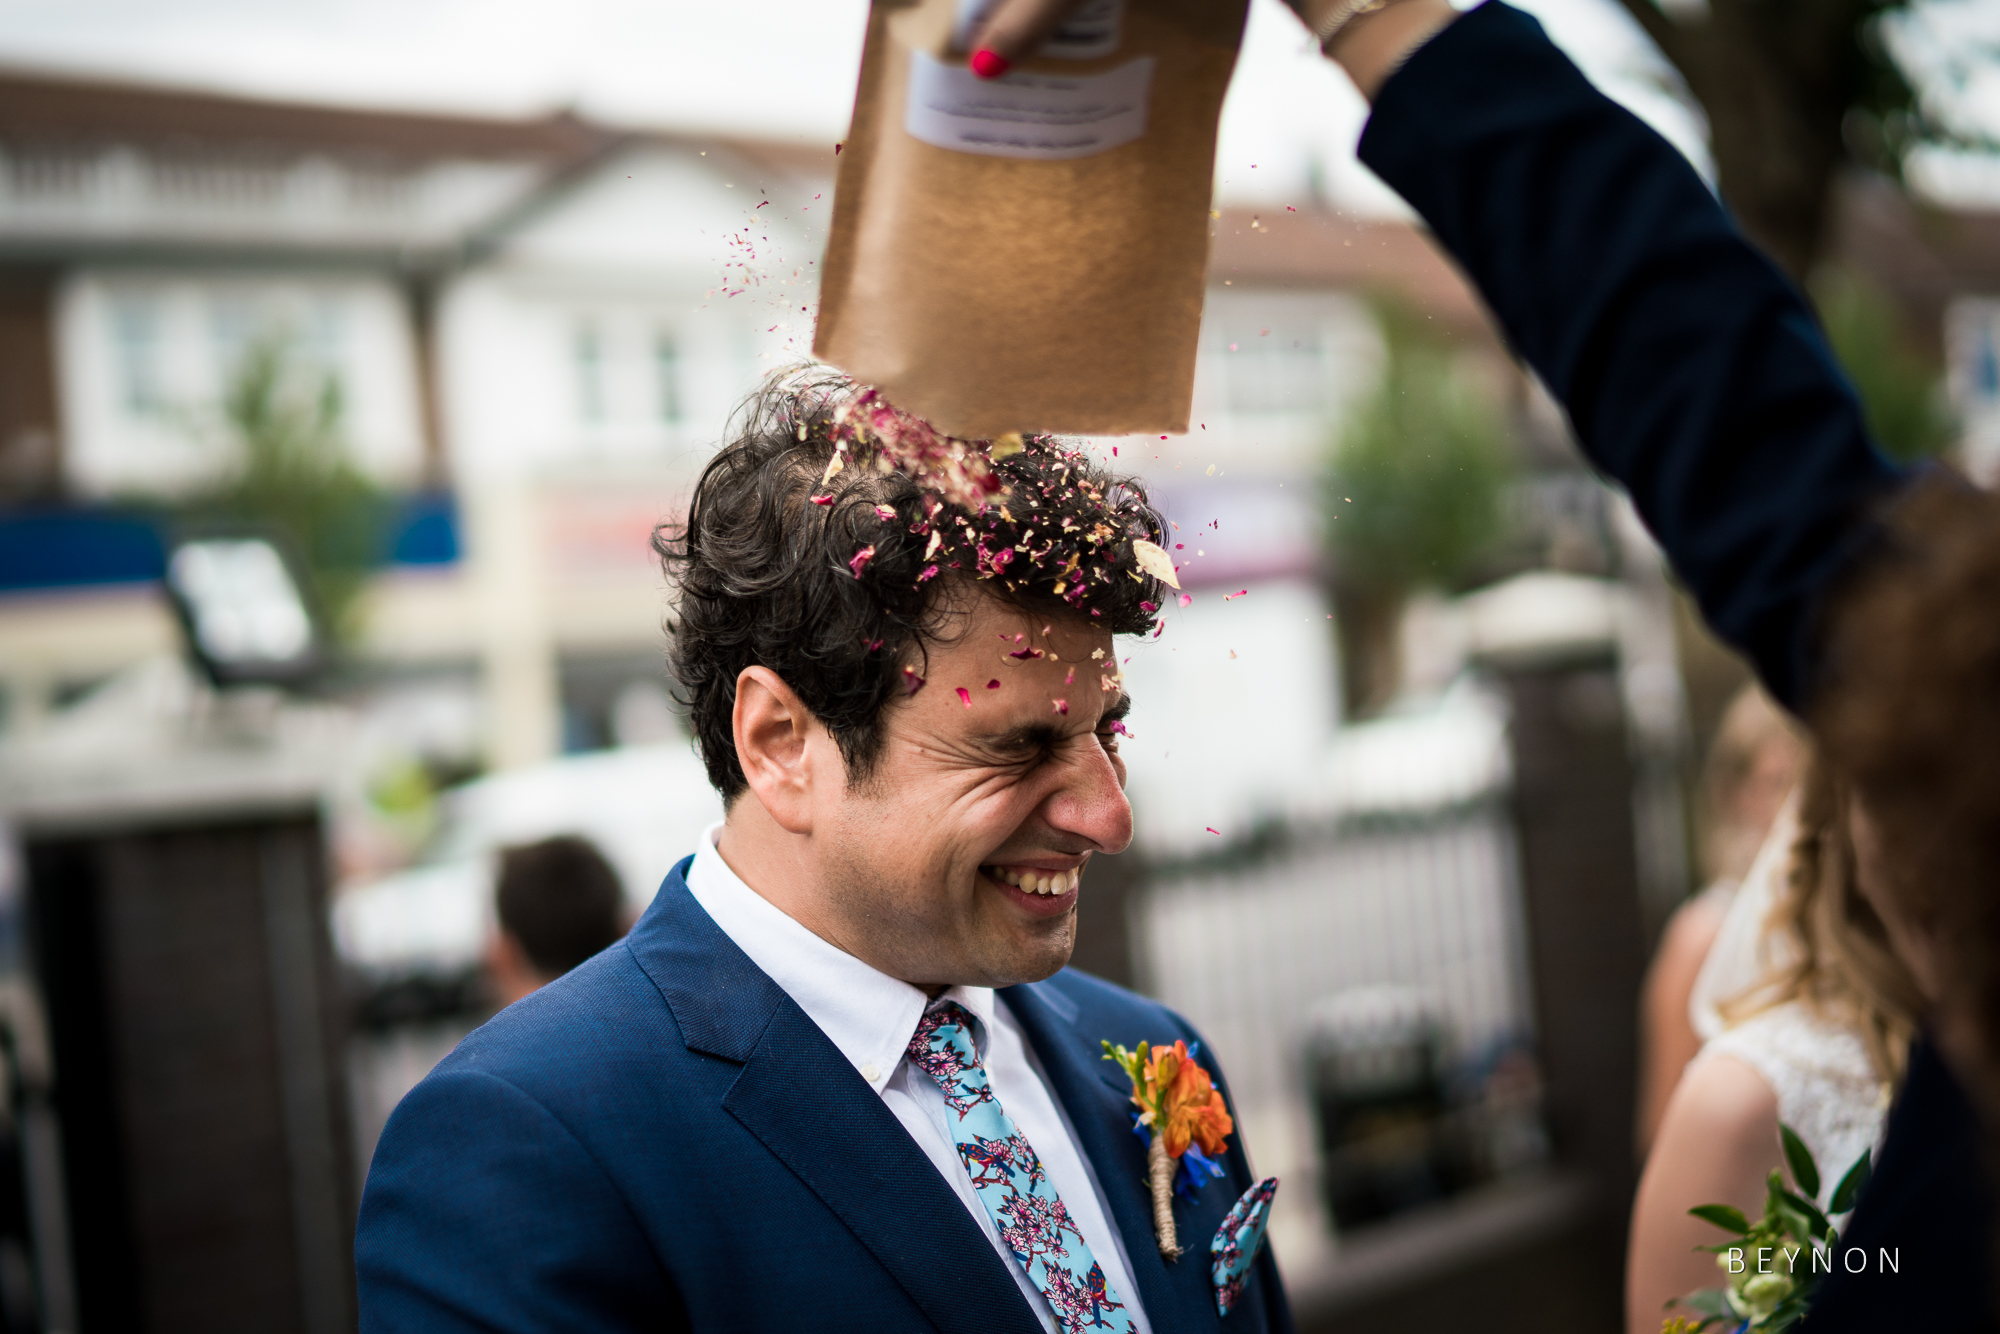 Groom has extra confetti emptied on his head